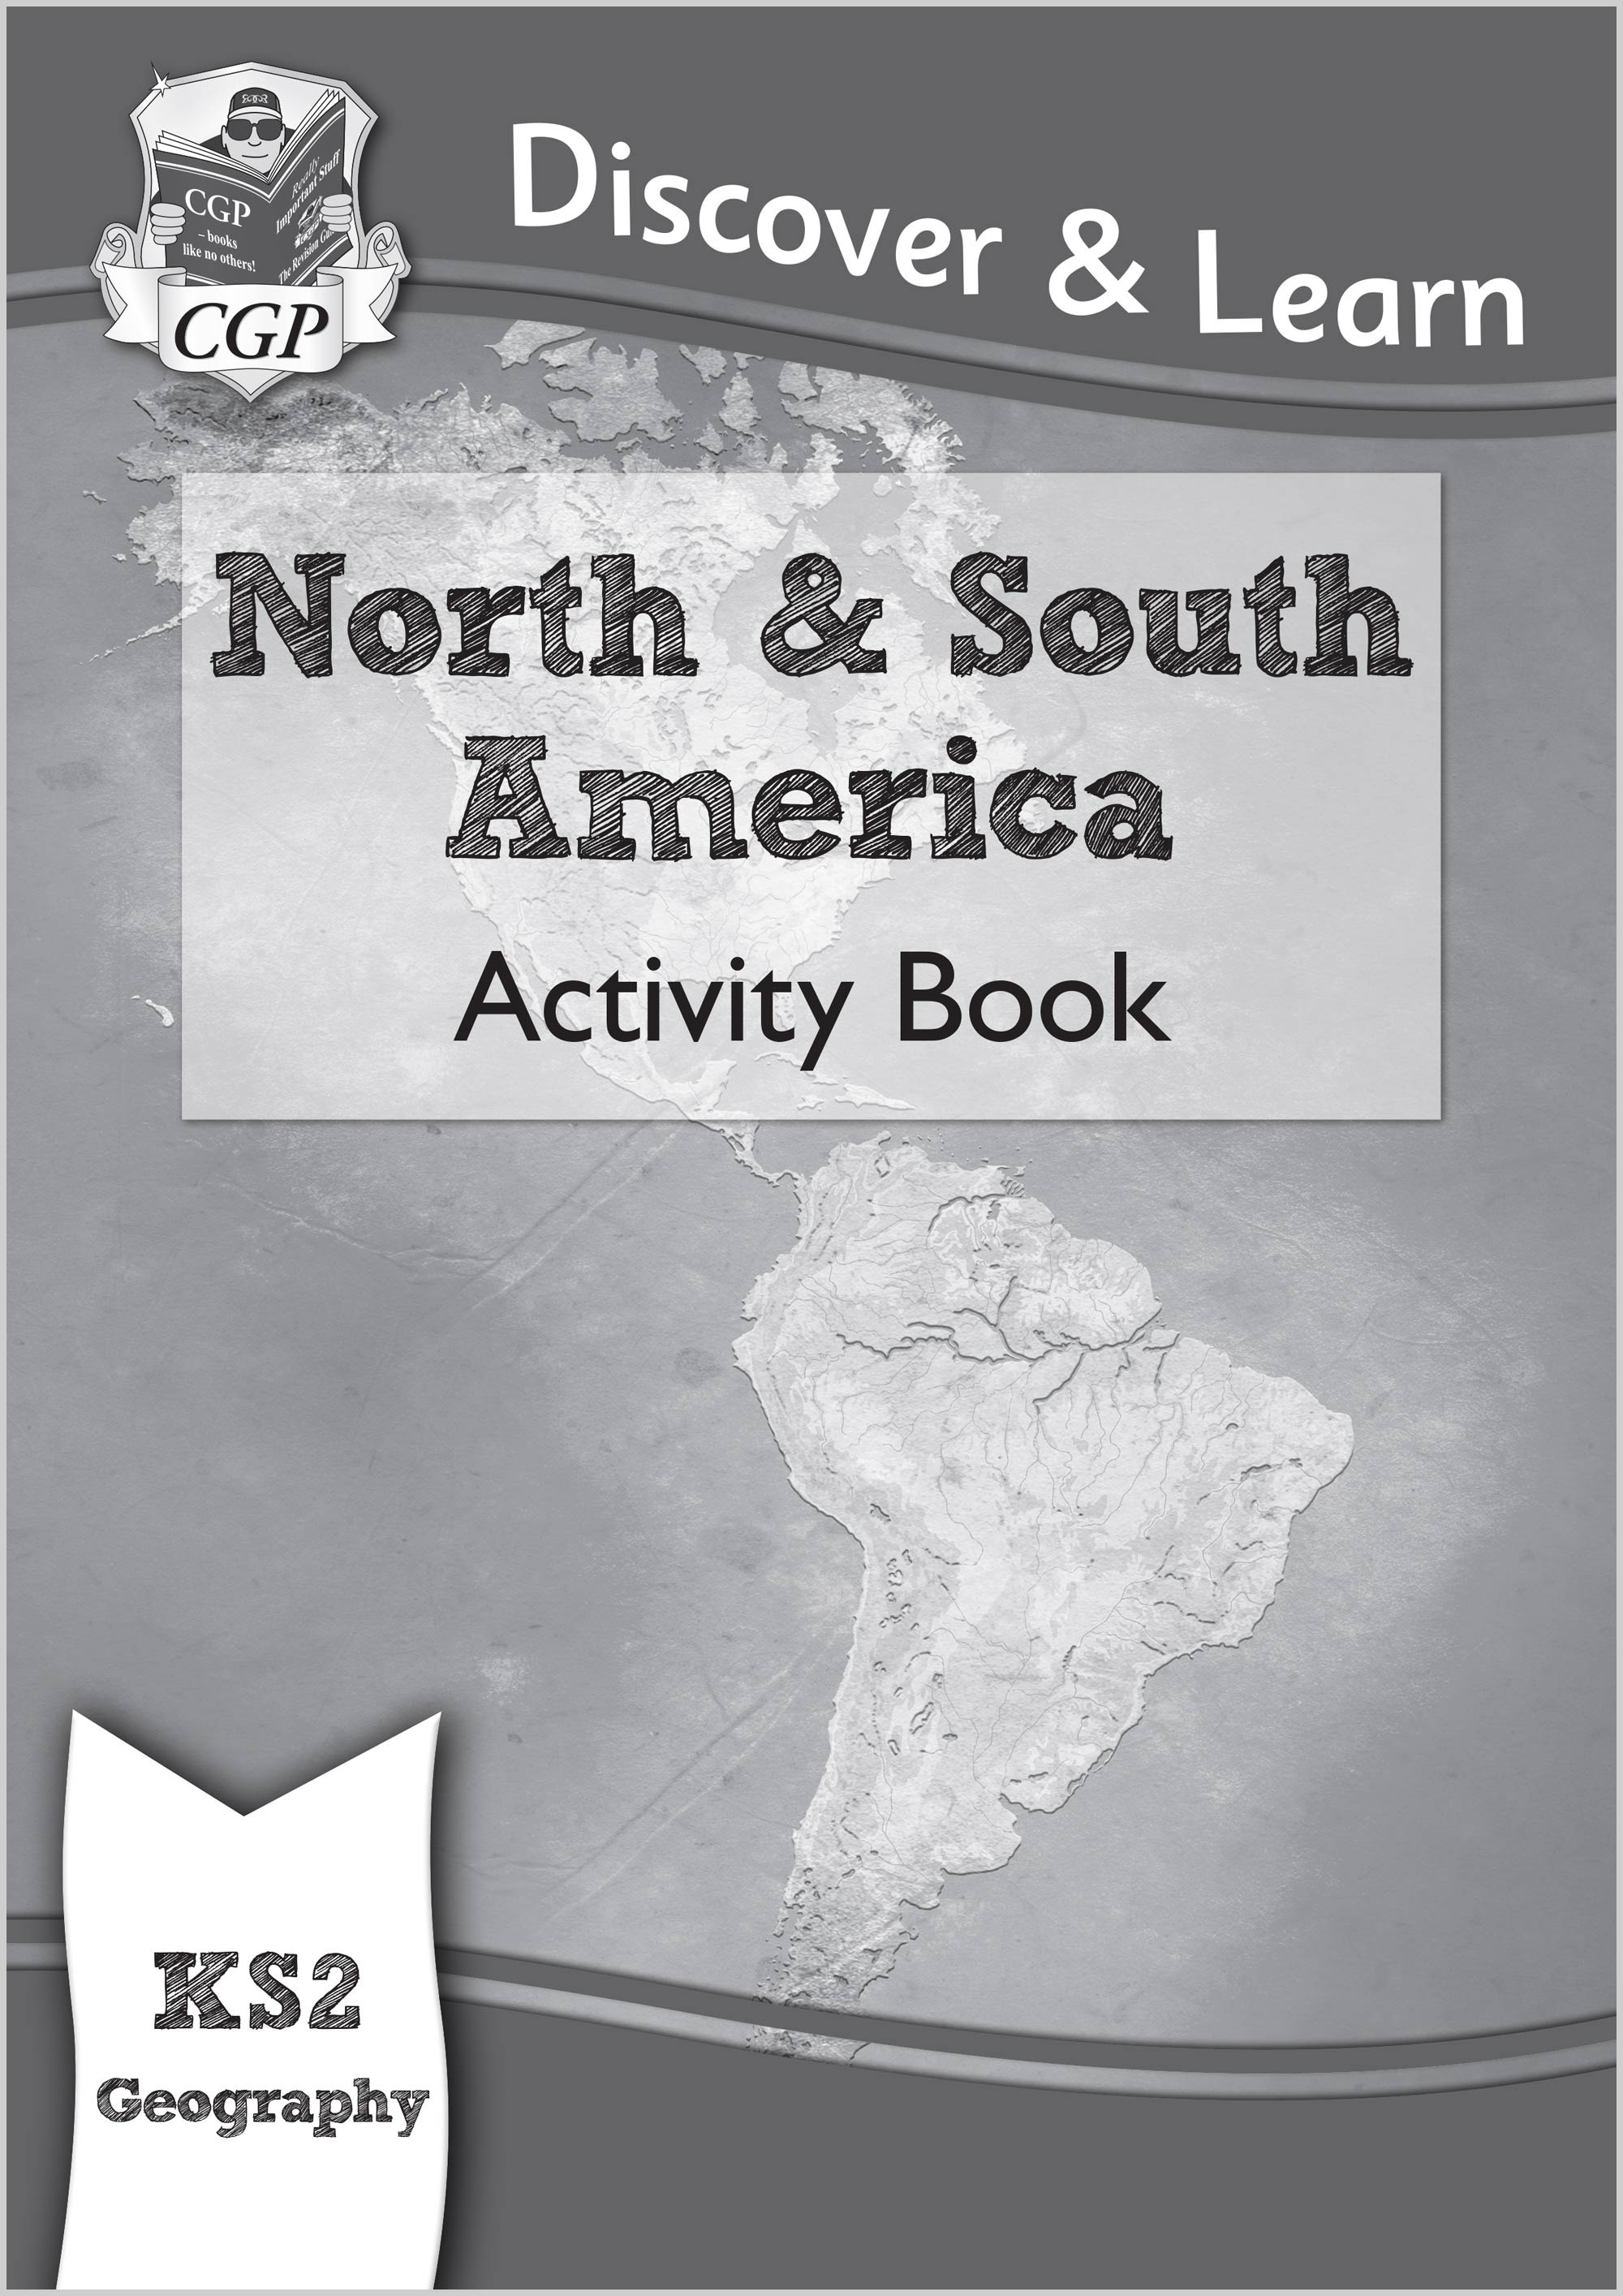 GAW21 - New KS2 Discover & Learn: Geography - North and South America Activity Book